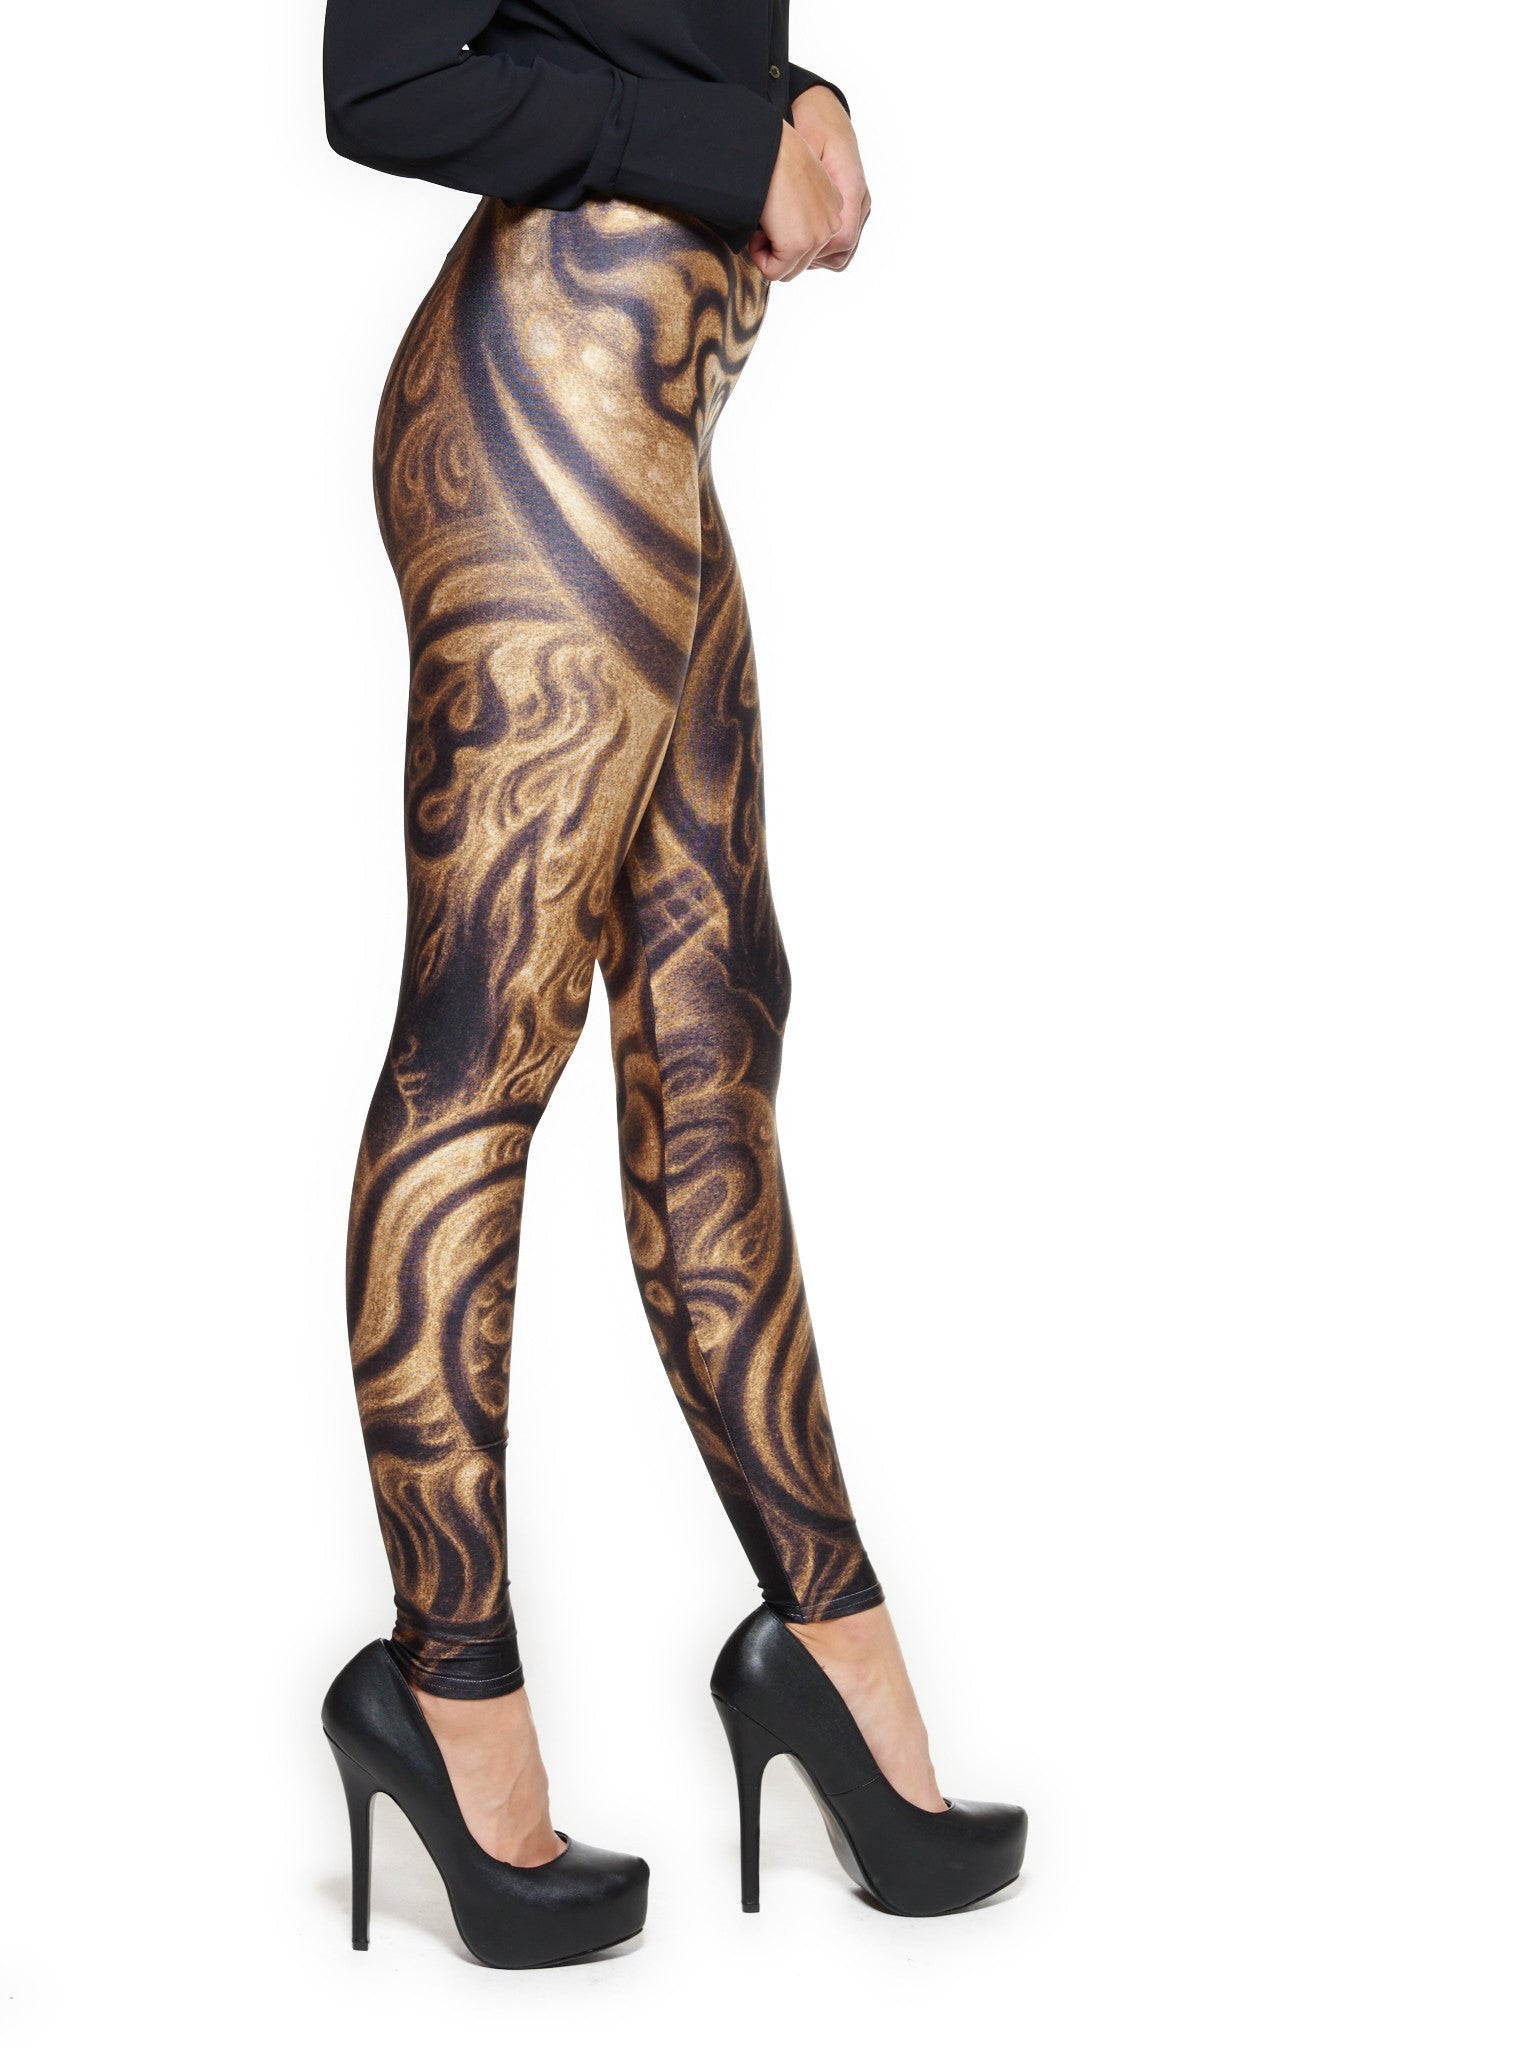 The Invisible Guidance Queen West Leggings - Nuvango Gallery & Goods - 2